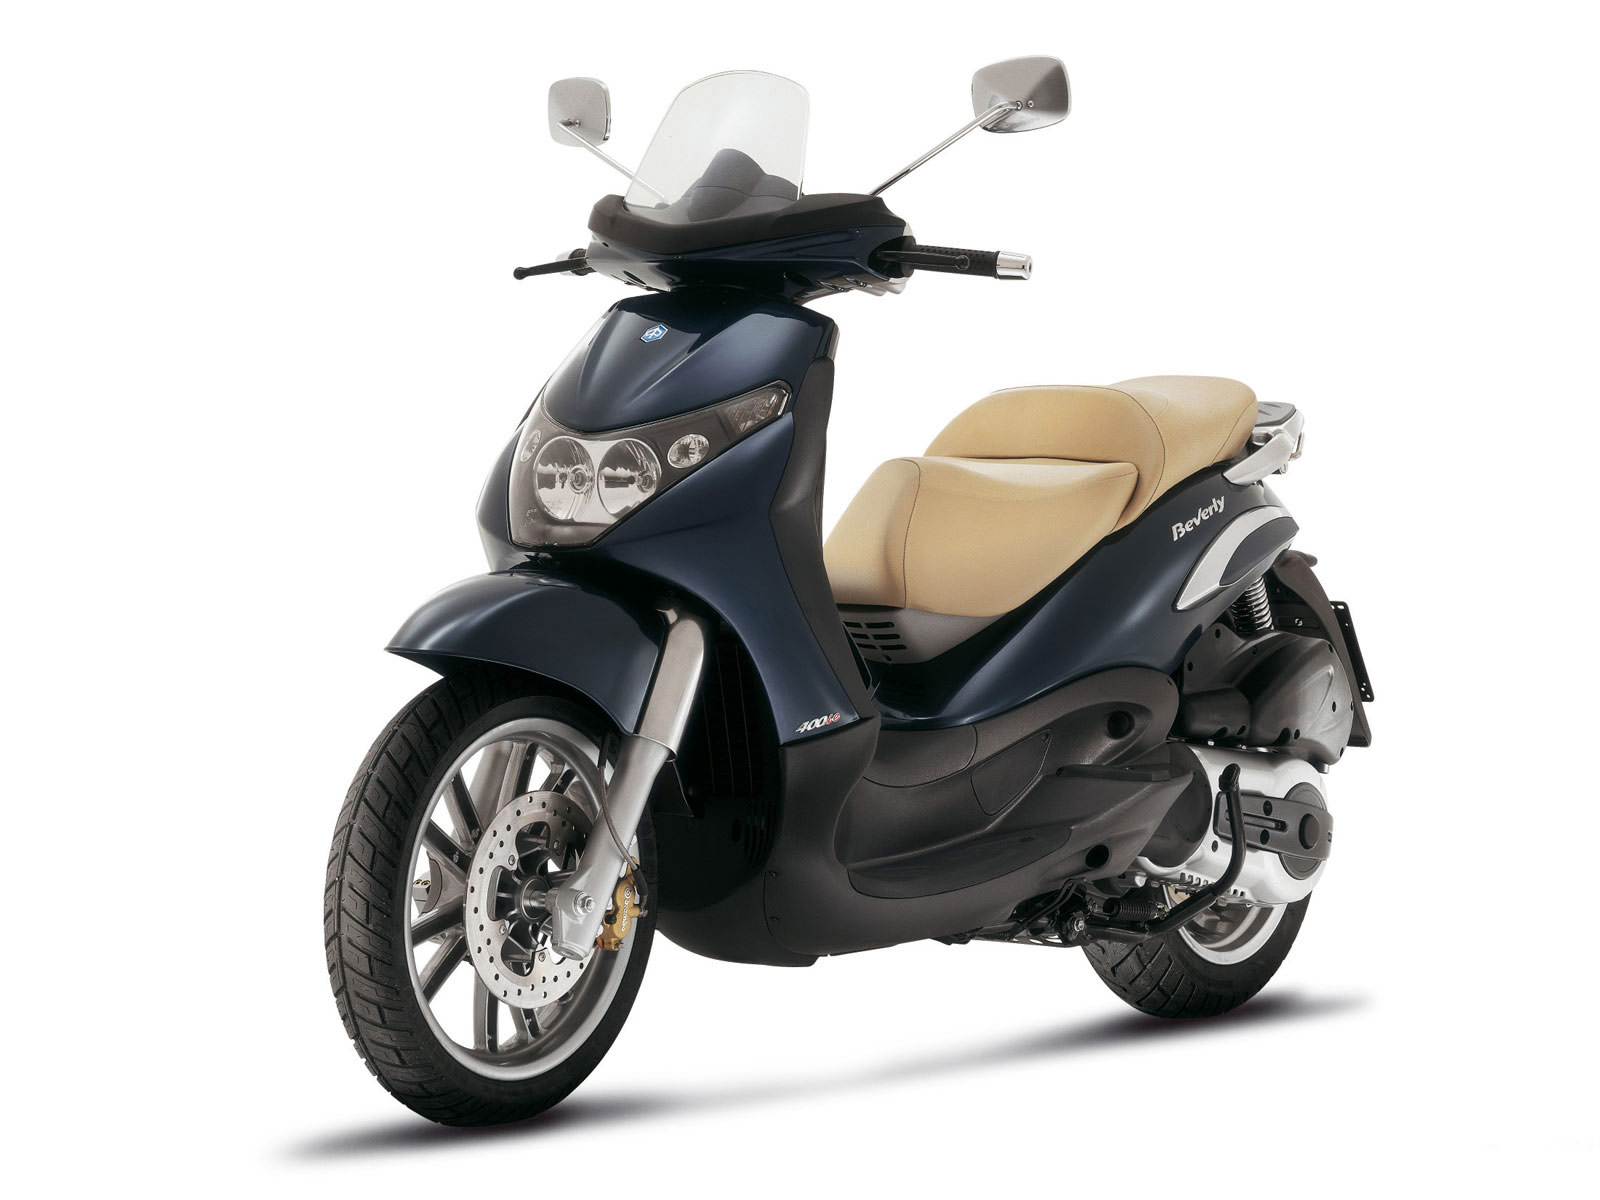 2007 piaggio beverly 400ie scooter pictures accident. Black Bedroom Furniture Sets. Home Design Ideas